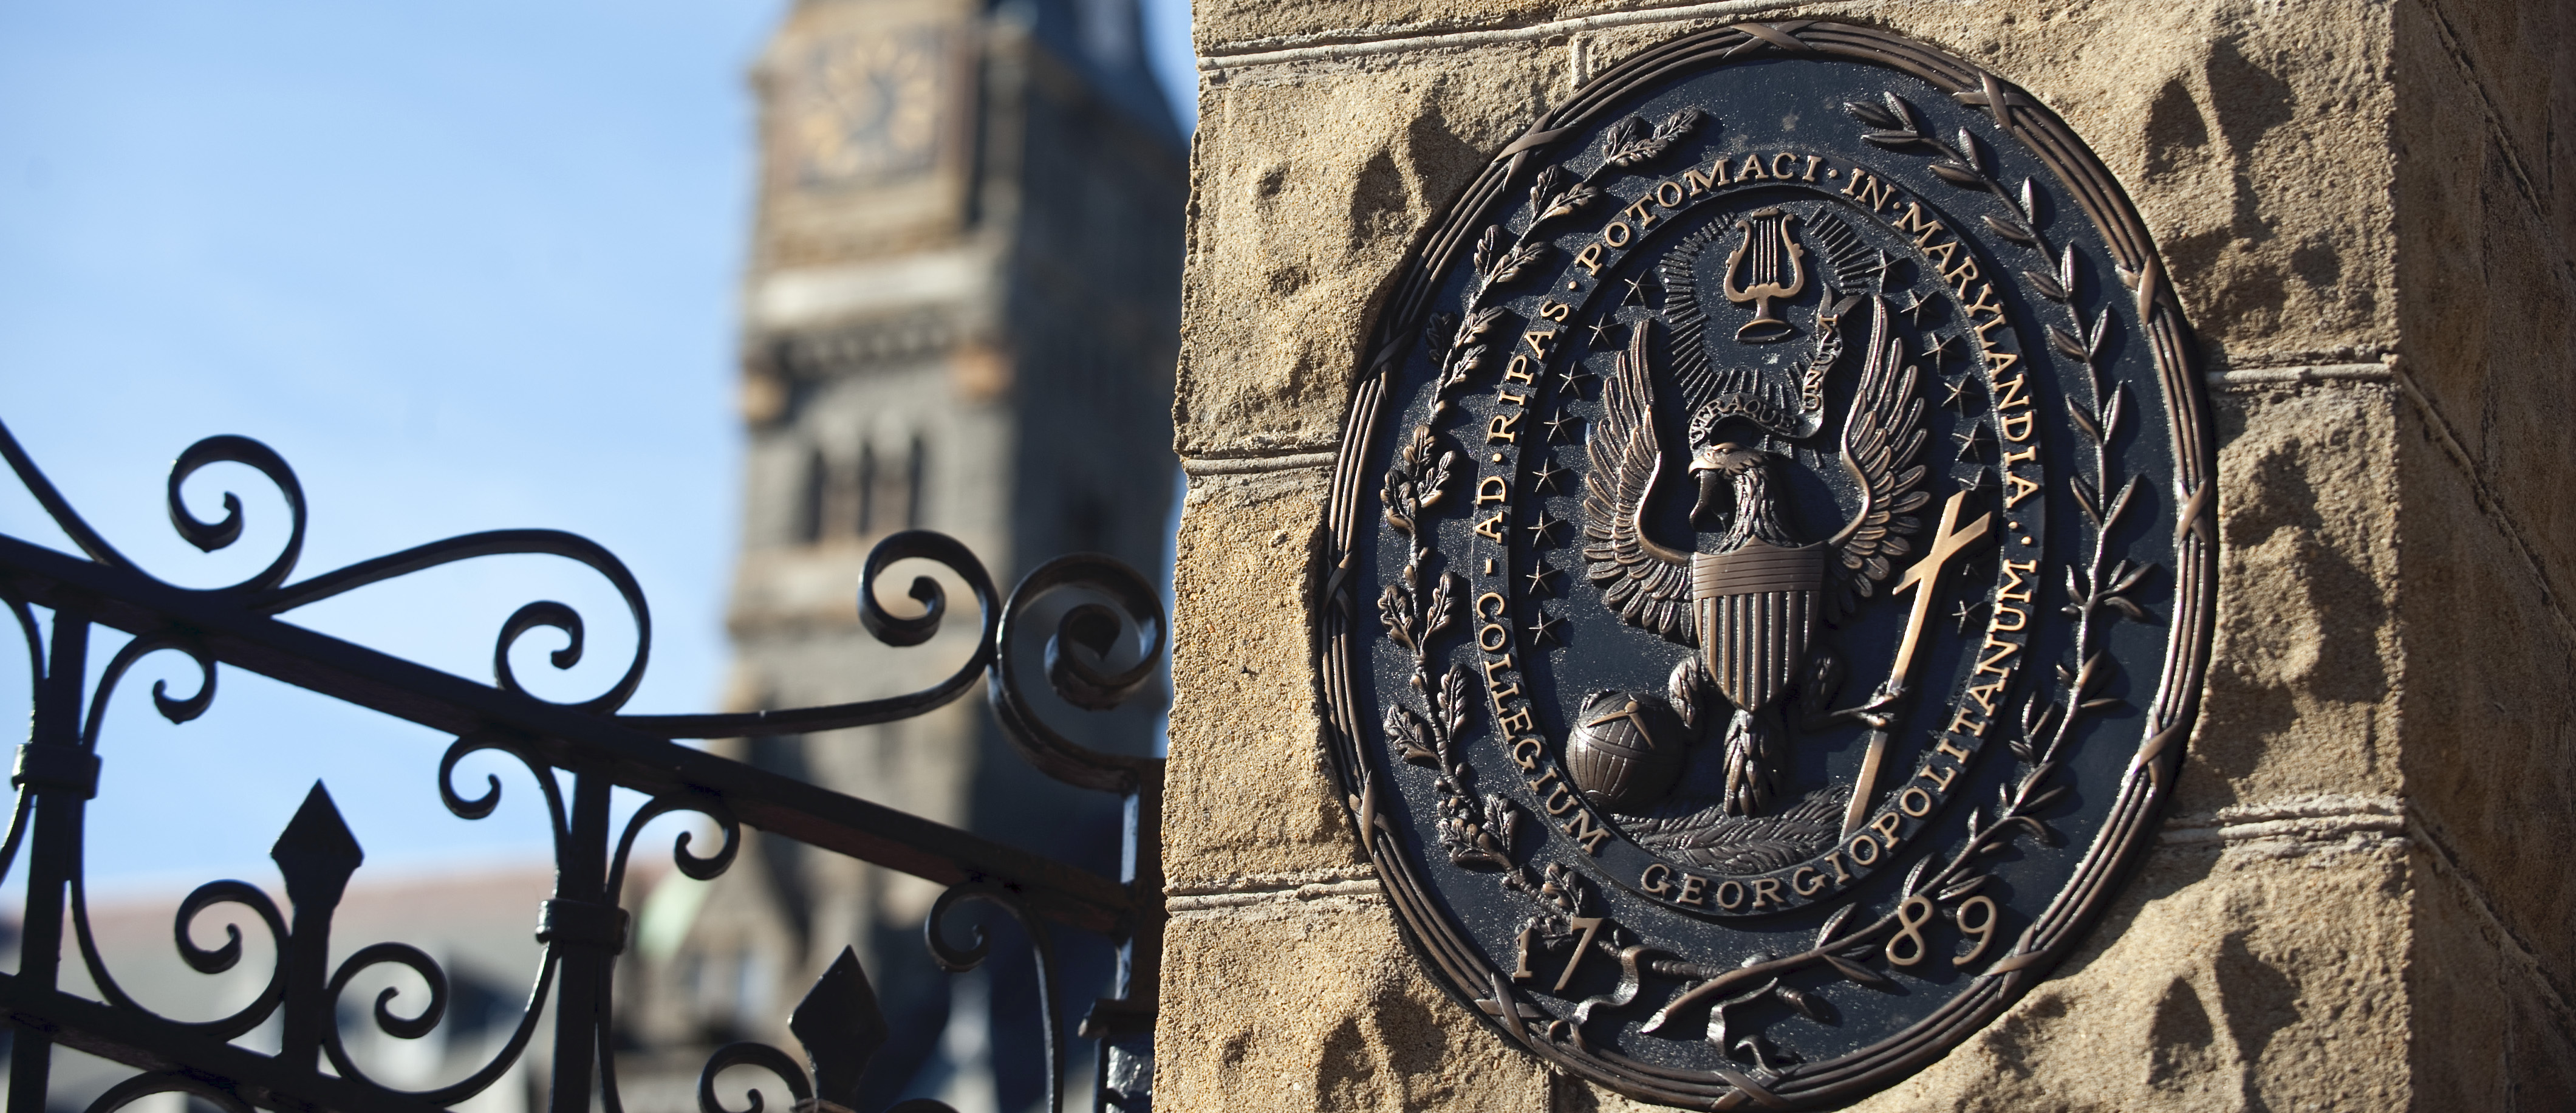 Image of the front gates and GU seal